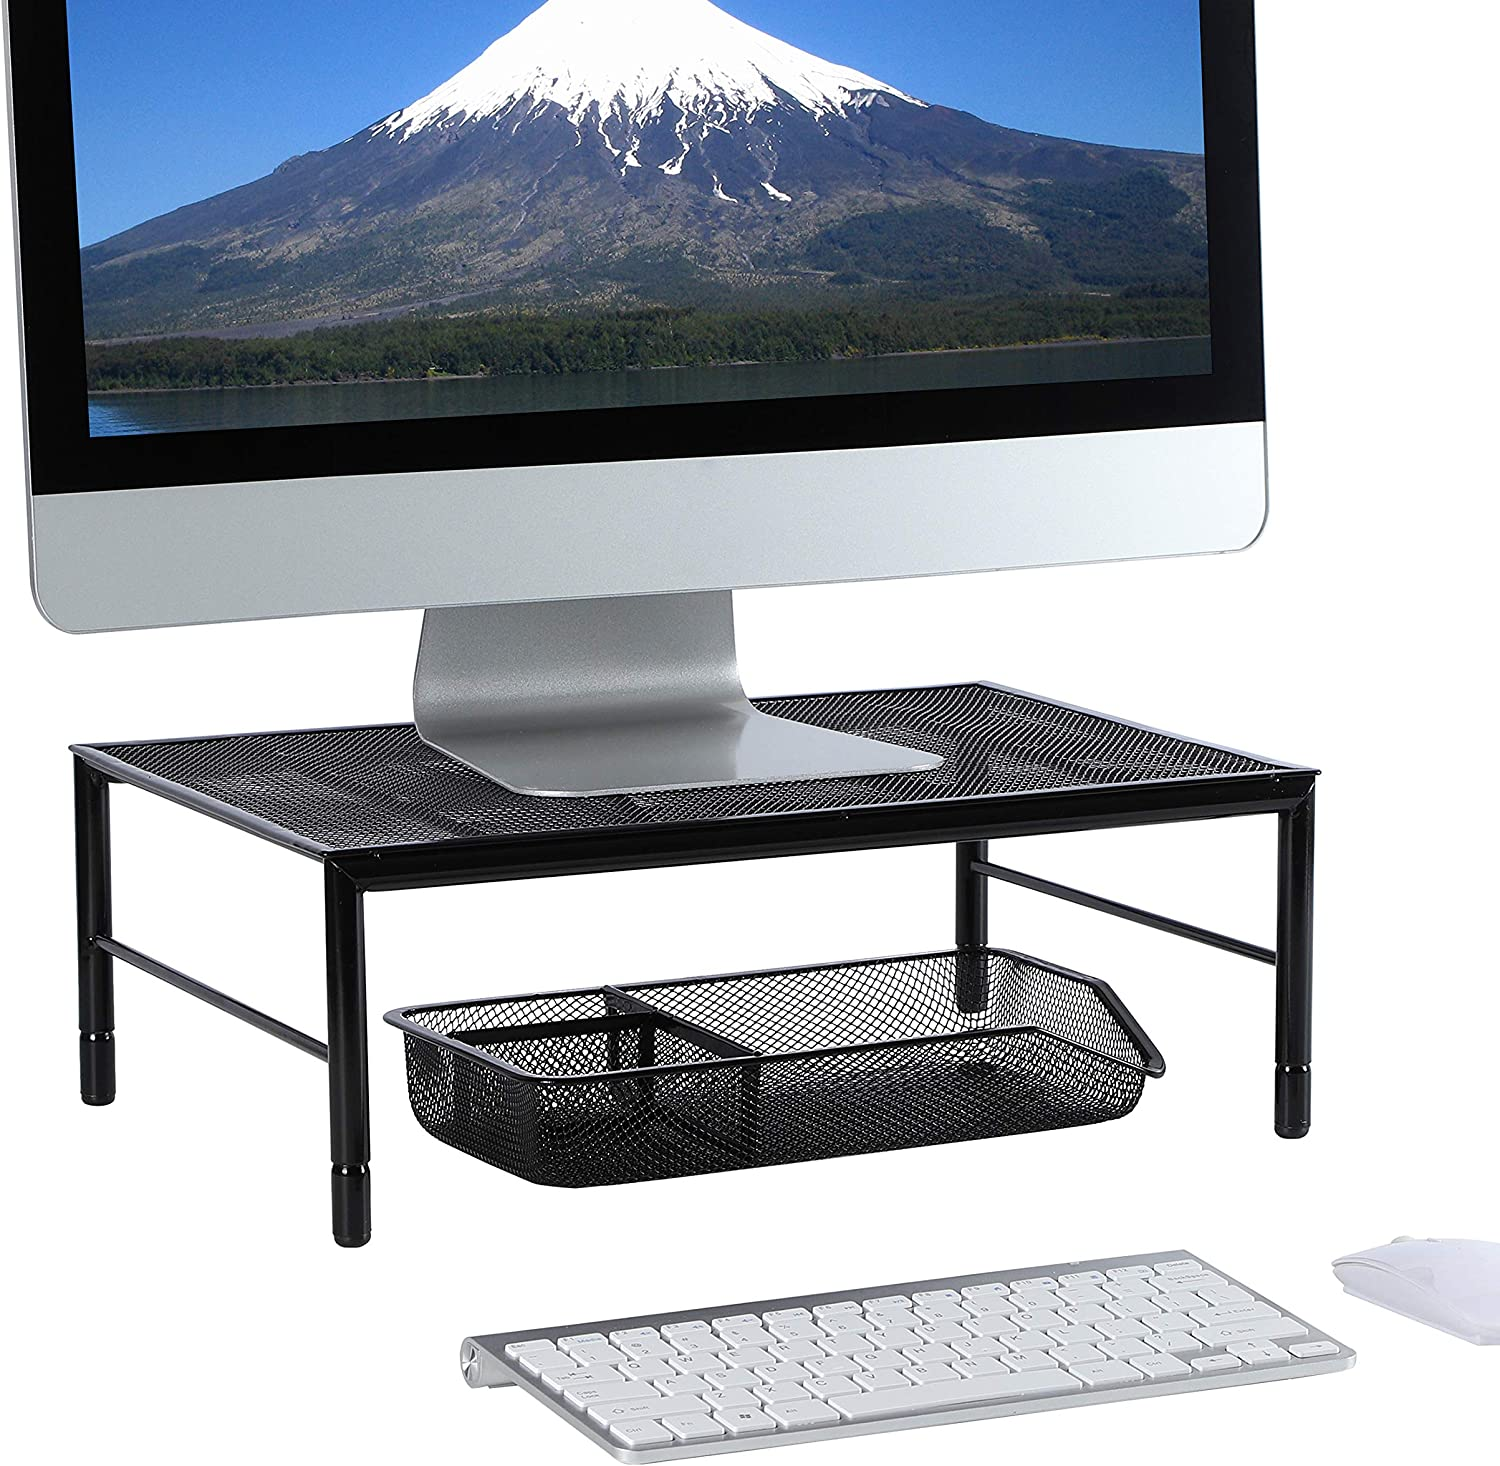 Monitor Stand Riser with Height Adjustable for Computer, Laptop, iMac, Pc, Printer, Desktop Stand Used As Kitchen Cabinet and Counter Shelf Organizer+Mesh Desk Tray Drawer Office Organizer, Black